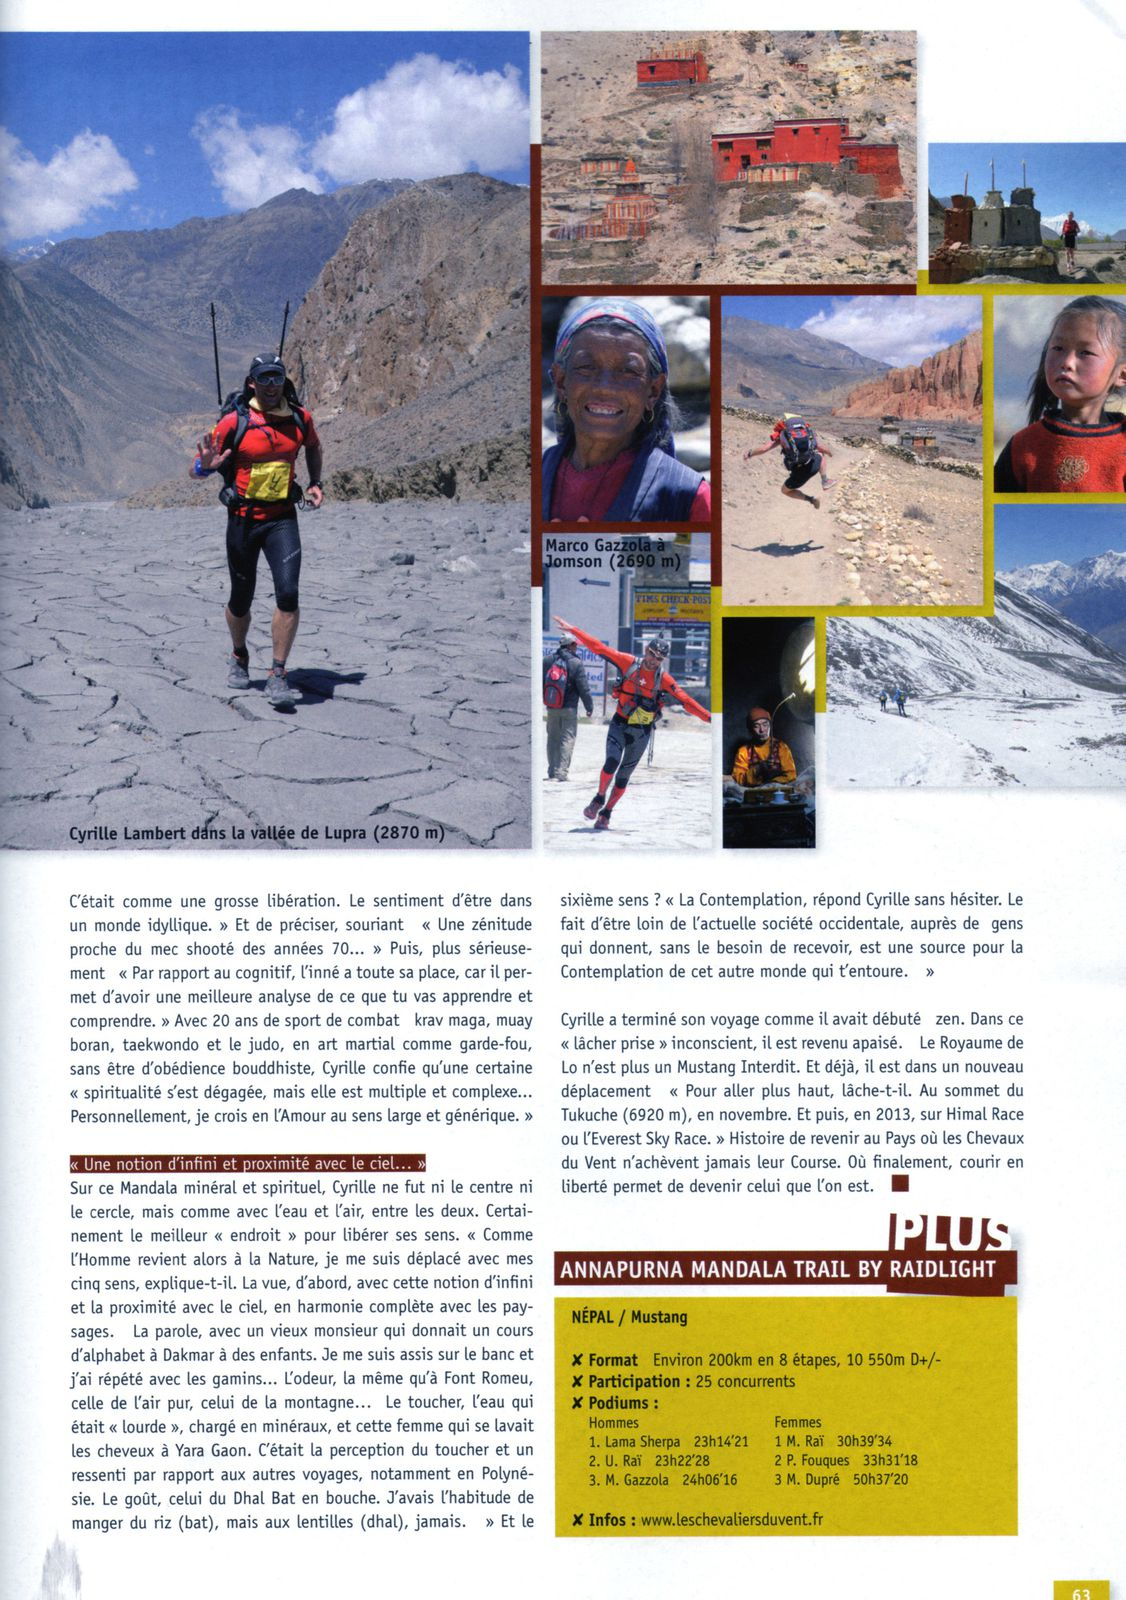 nepal trail endurance 2 blog